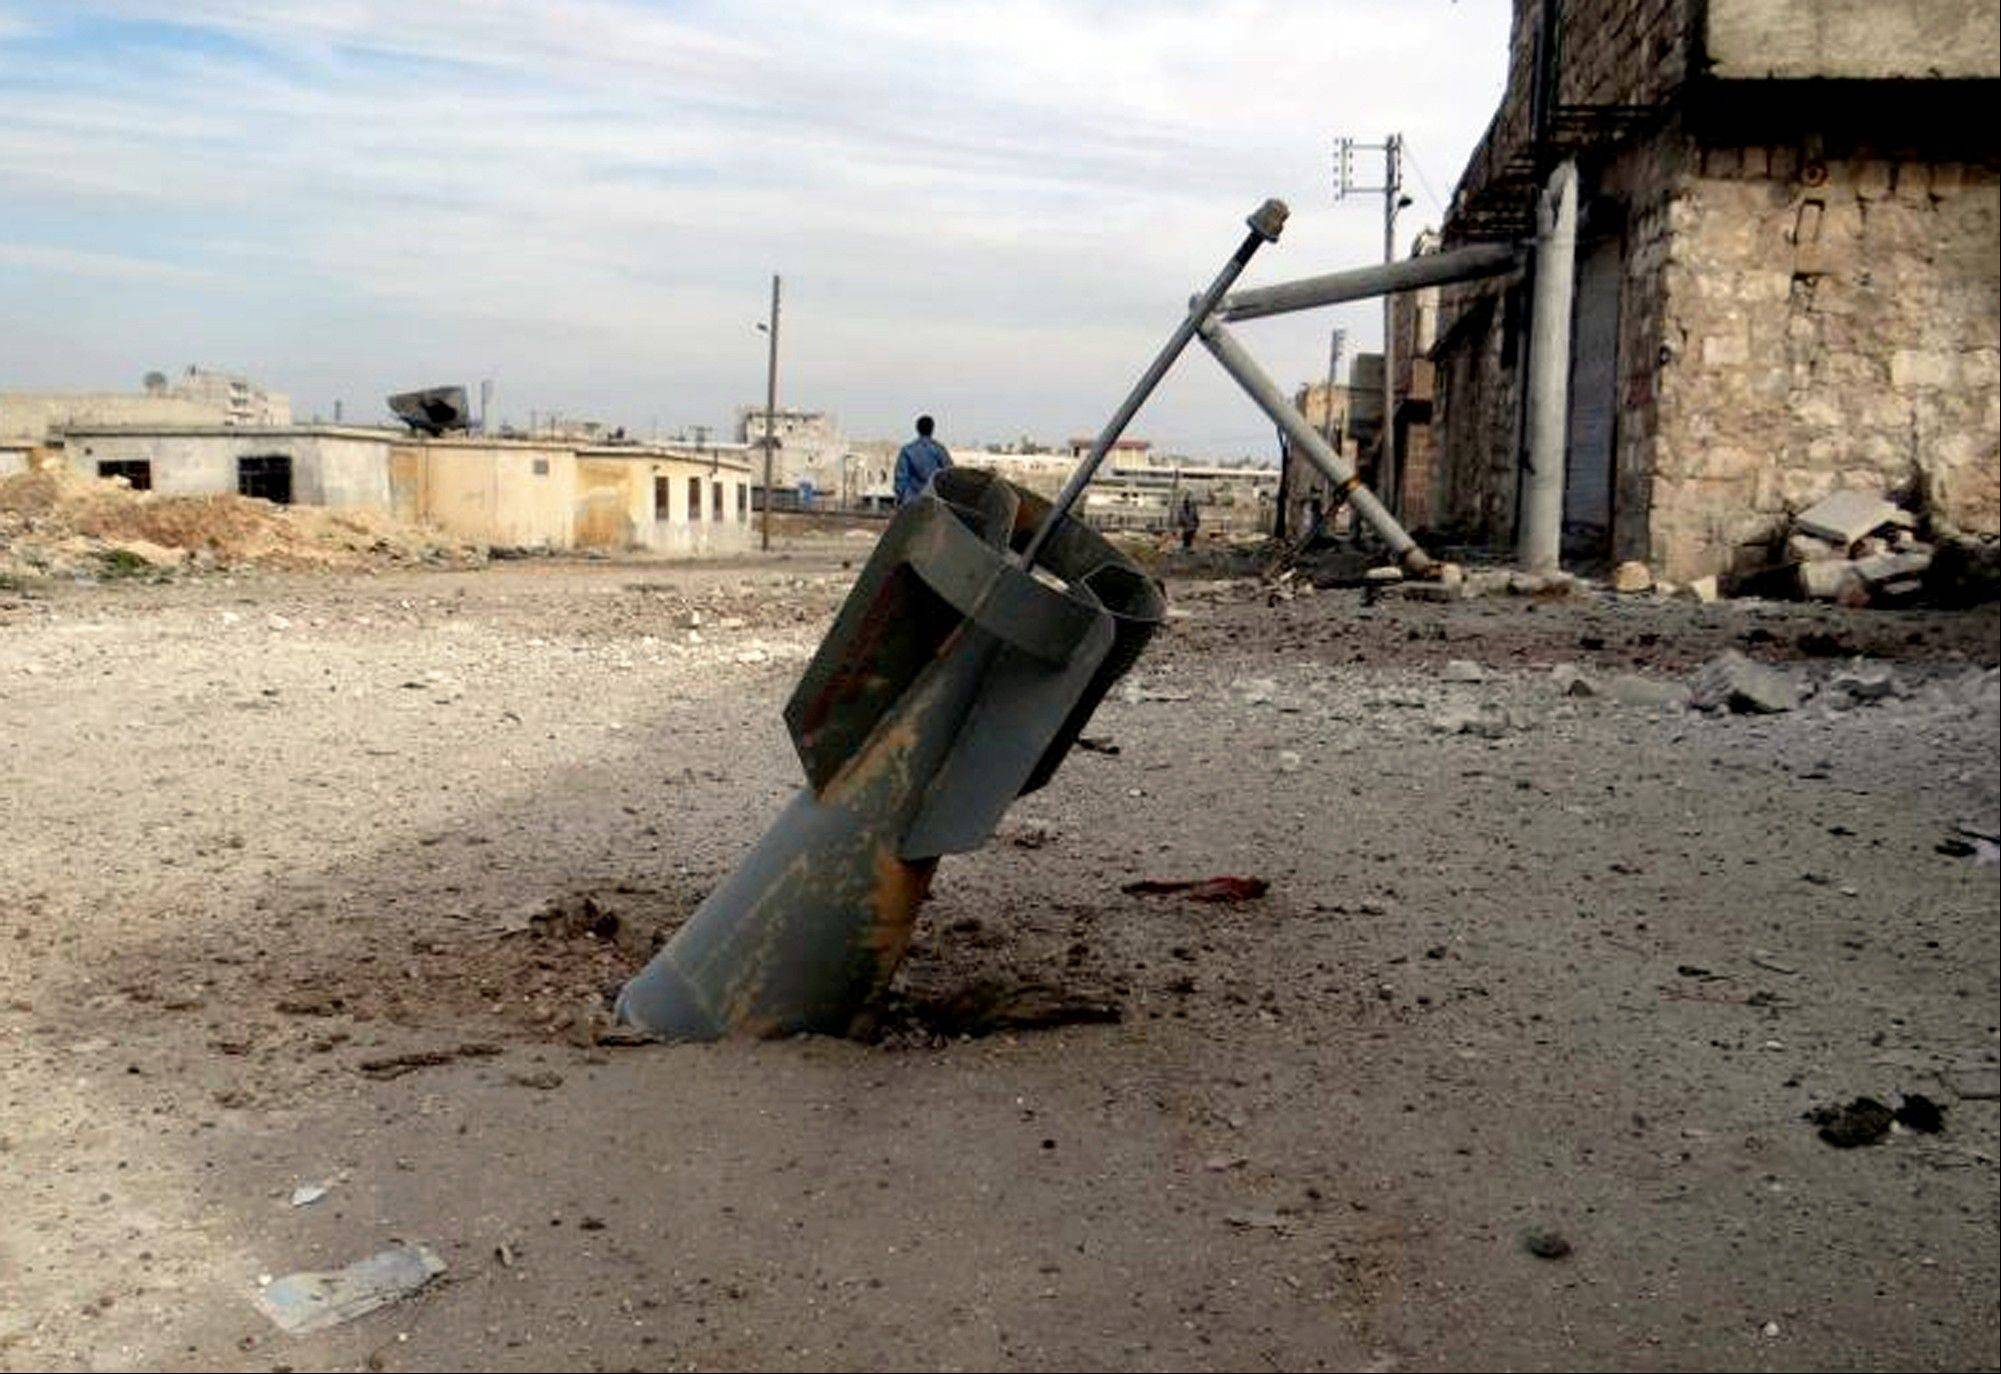 An unexploded rocket from a Syrian warplane, in the neighborhood of Karam Alqasir, near Aleppo International Airport, in Aleppo, Syria, Thursday, Feb. 21, 2013. A car bomb near the Damascus headquarters of Syria�s ruling party killed scores on Thursday, while a government airstrike on a rebel field hospital in southern Daraa left several dead, opposition activists and state media reported.